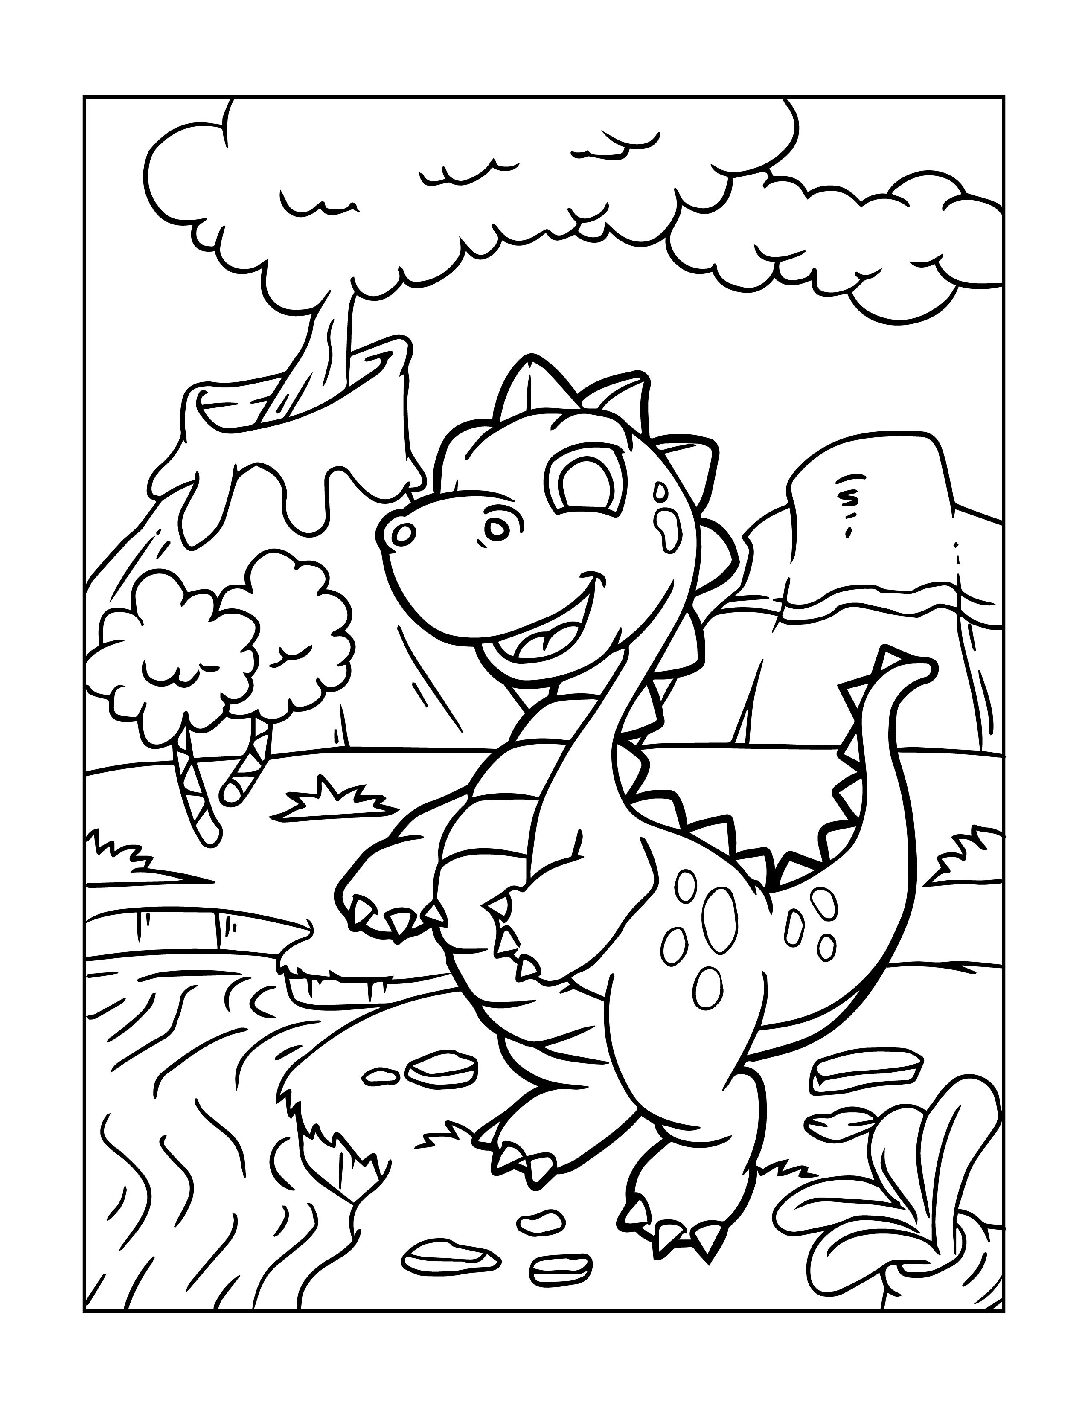 Coloring-Pages-Dinosaur-6-pdf Free Printable Dinasour Colouring Pages